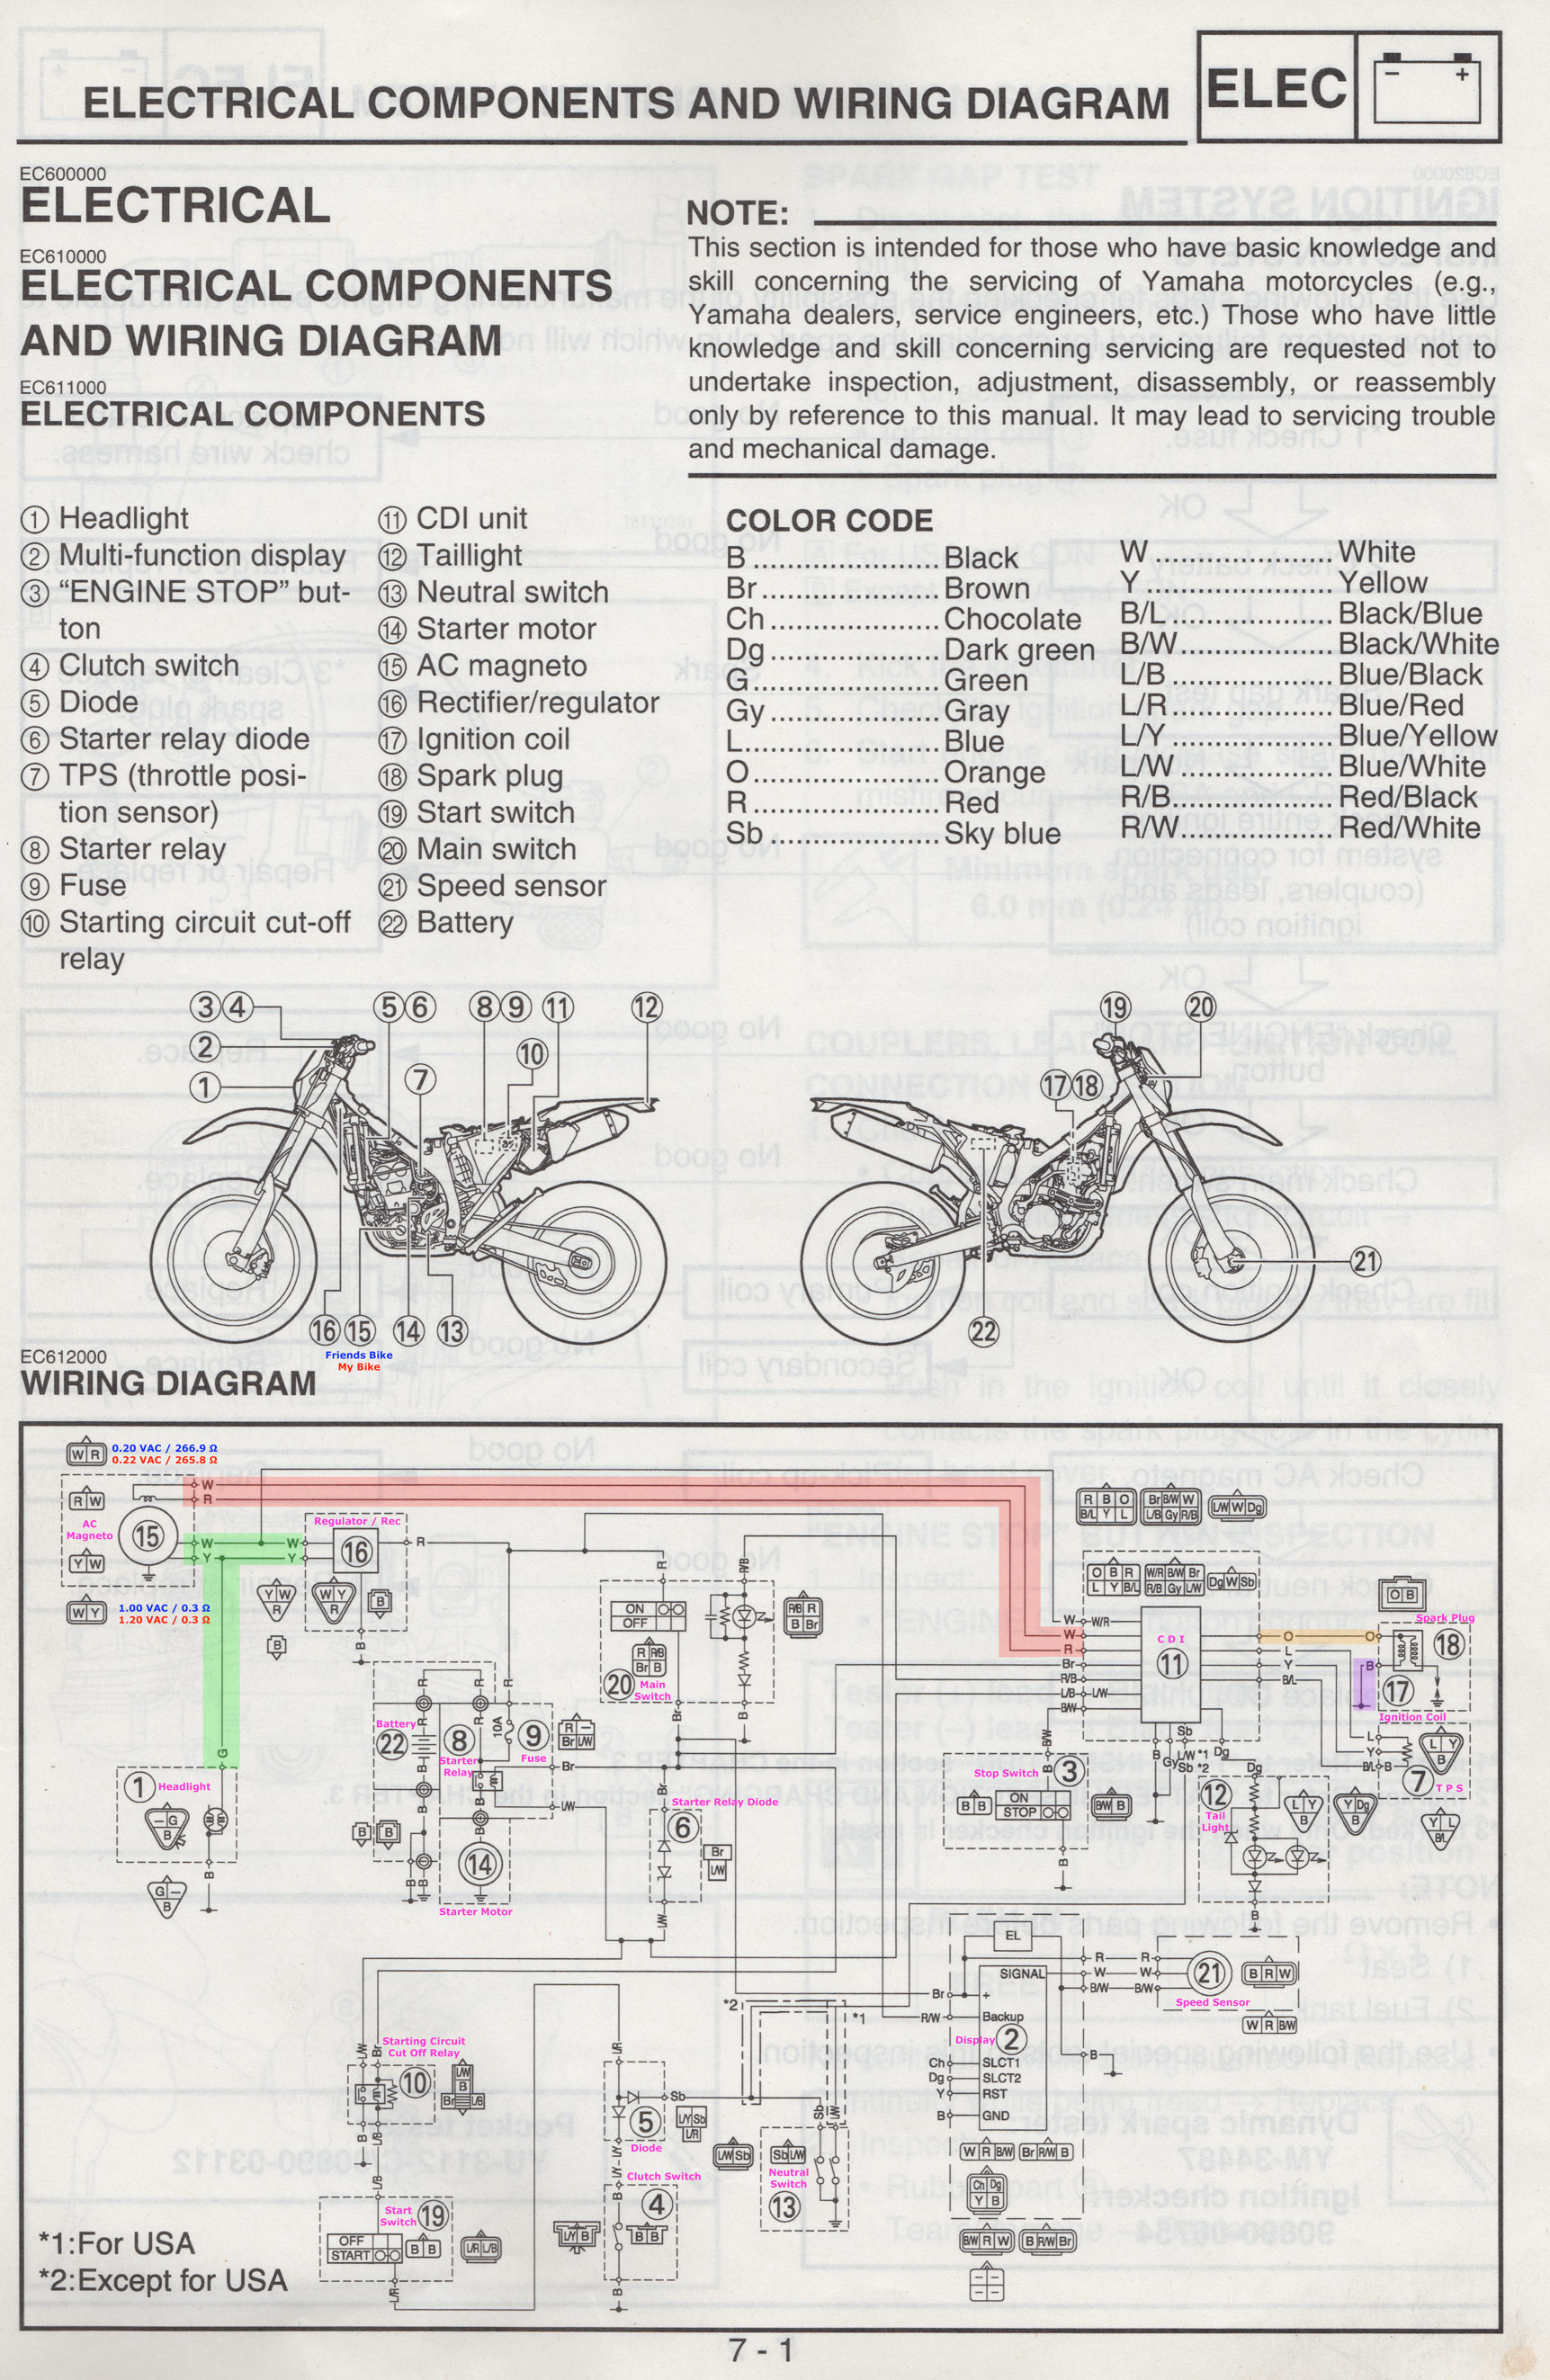 Ktm 2013 Wiring Diagram Auto Electrical Wr450f 2012 26 Images